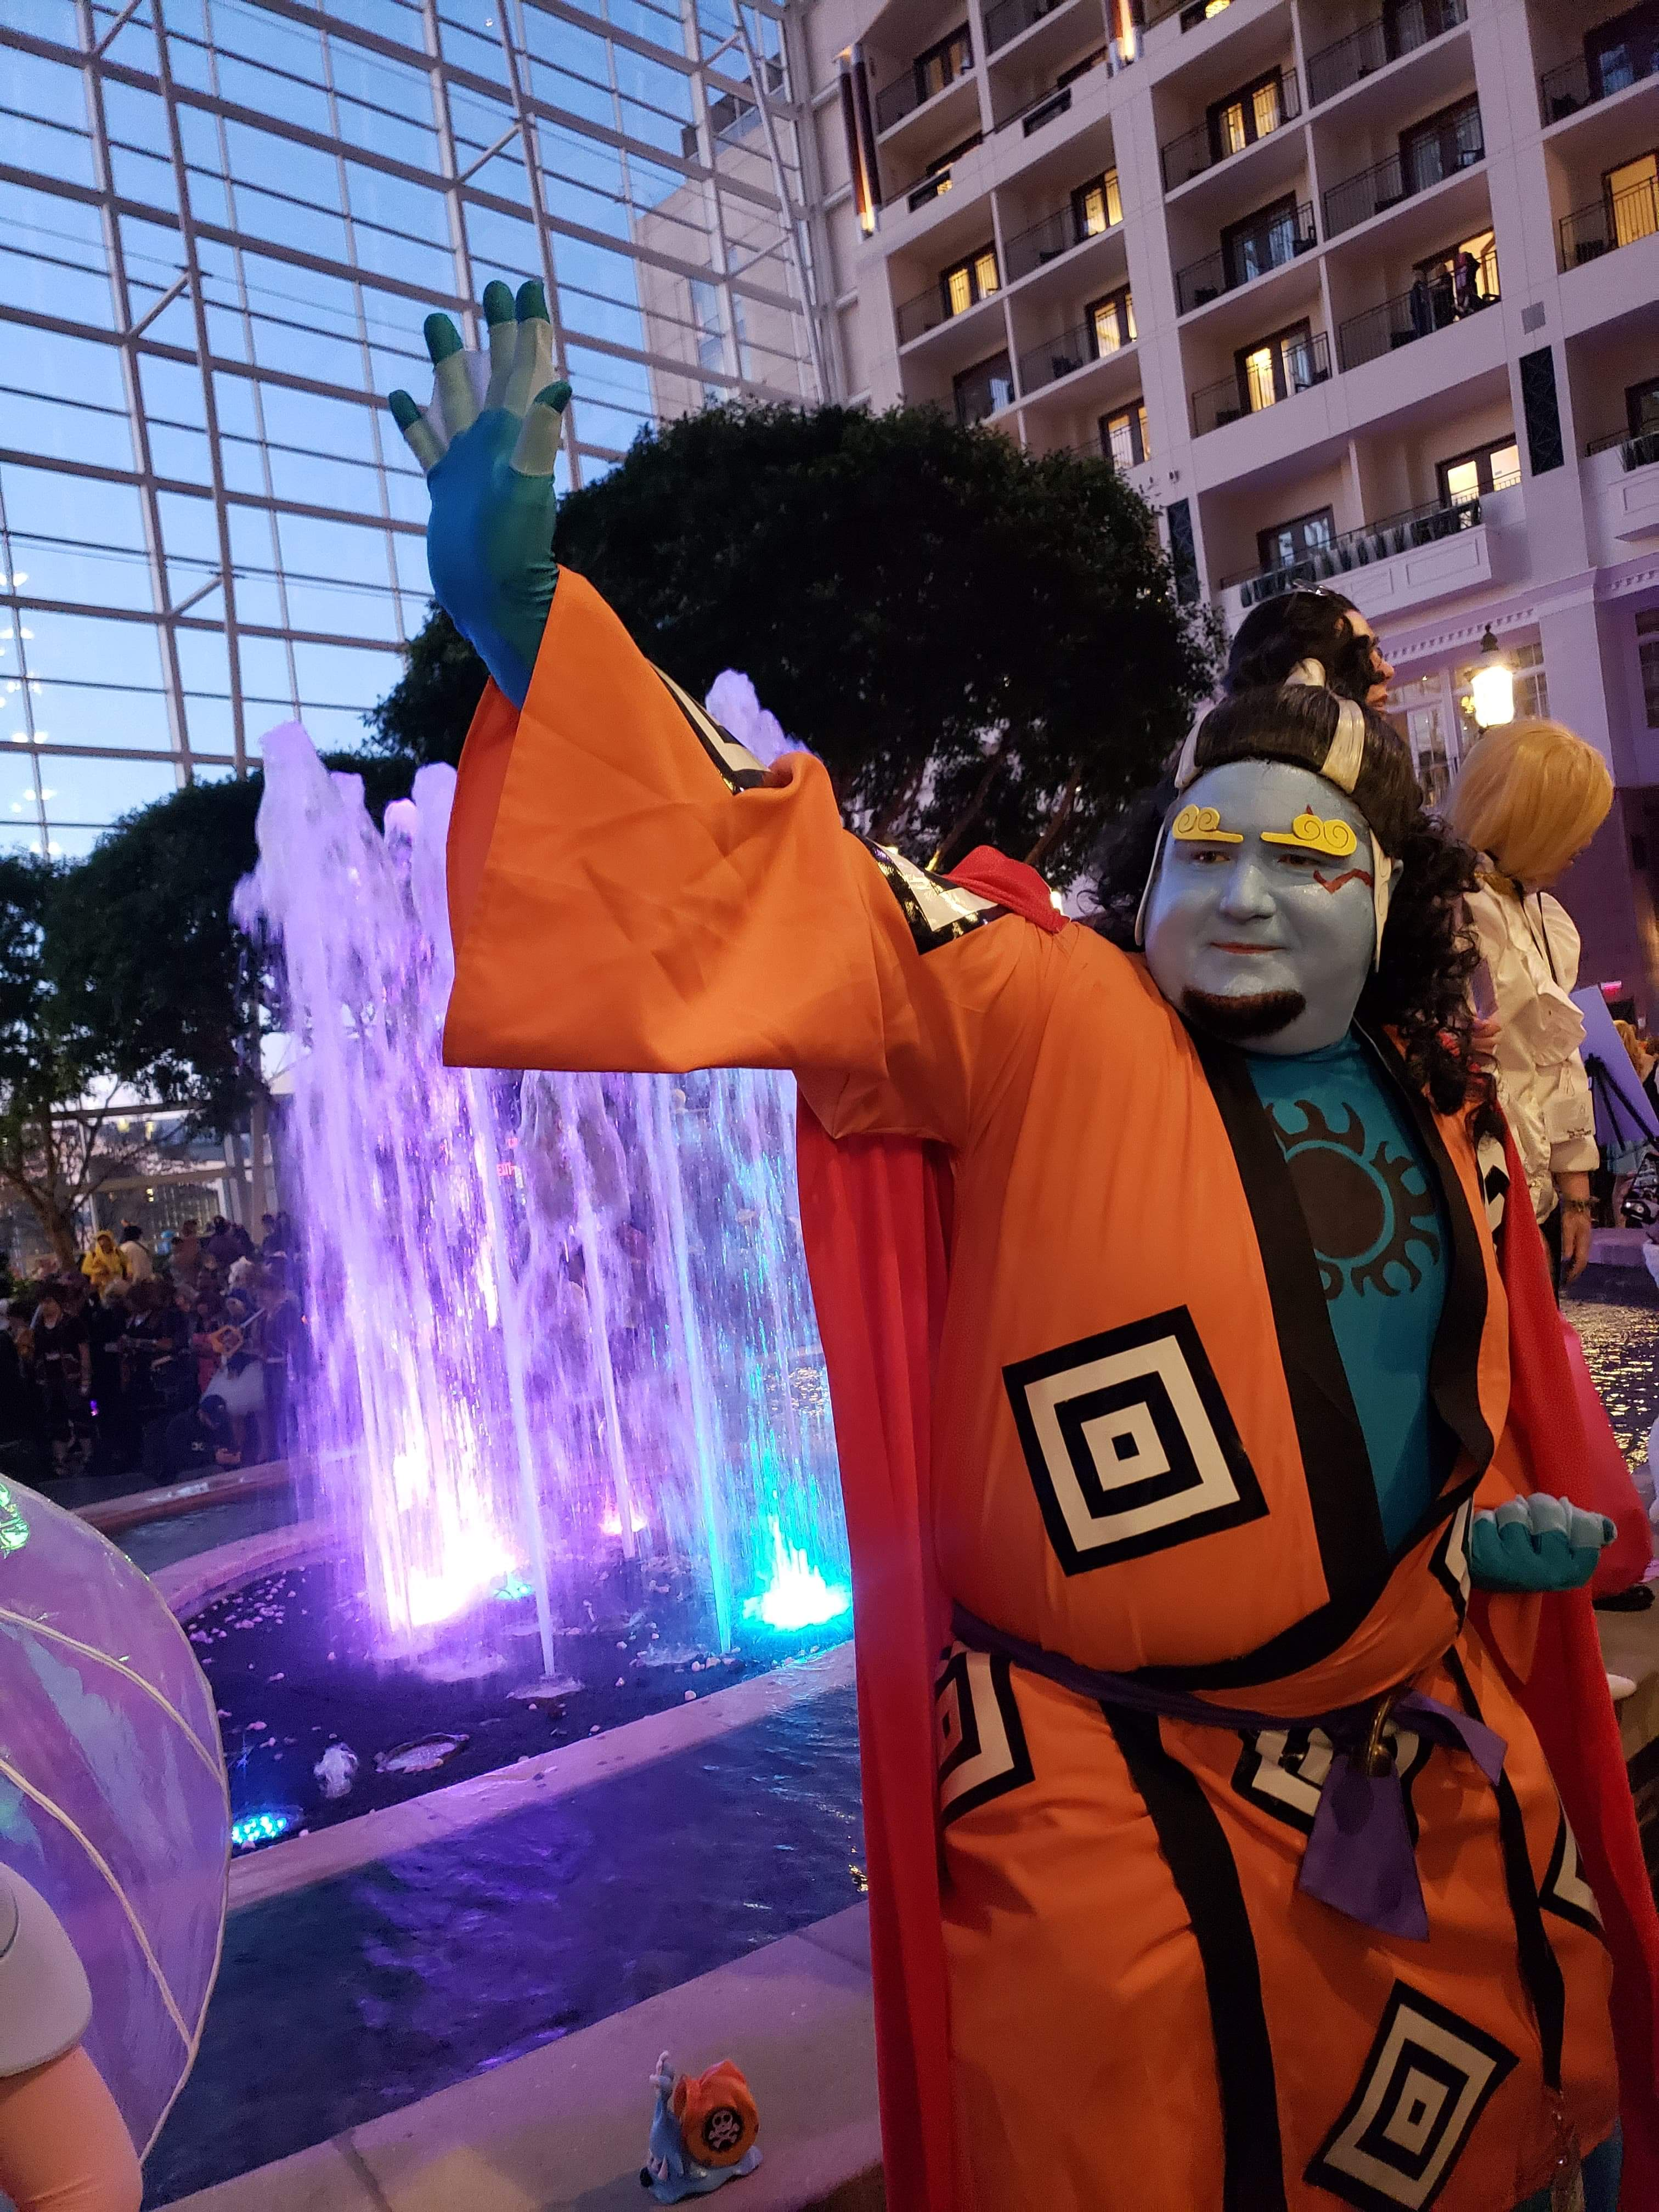 Man with blue skin and orange robes